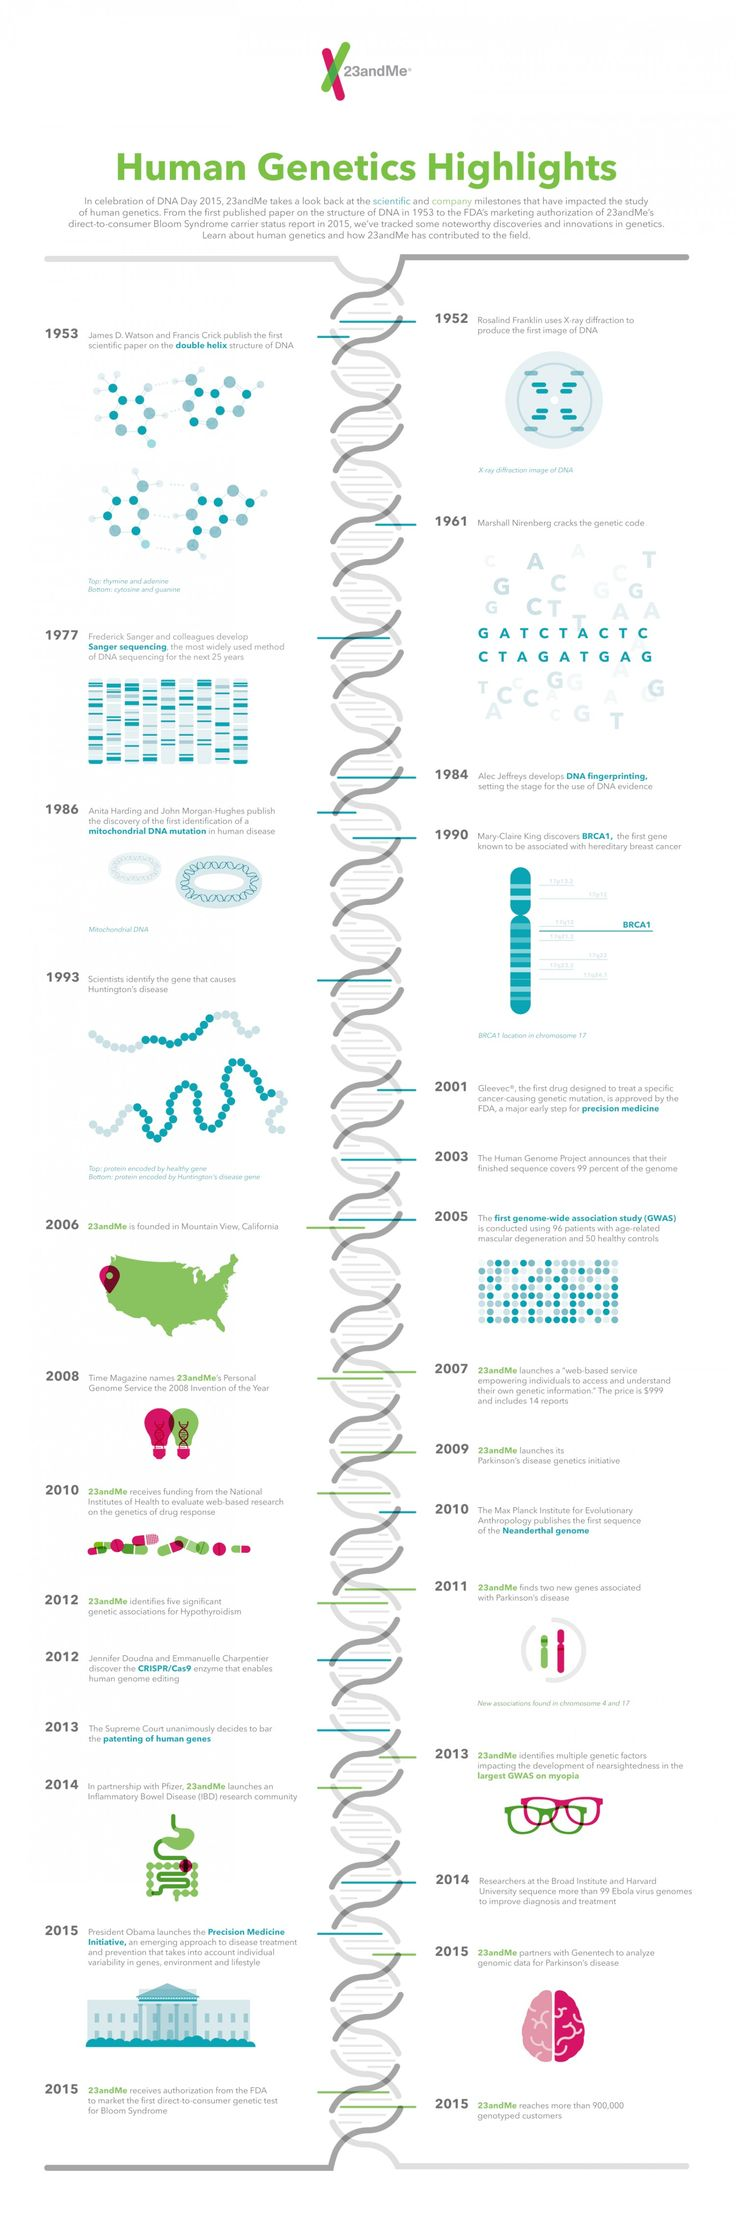 23andMe took a look back at highlights in human genetics history. From the first published paper on DNA in 1953 to the first GWAS in 2005